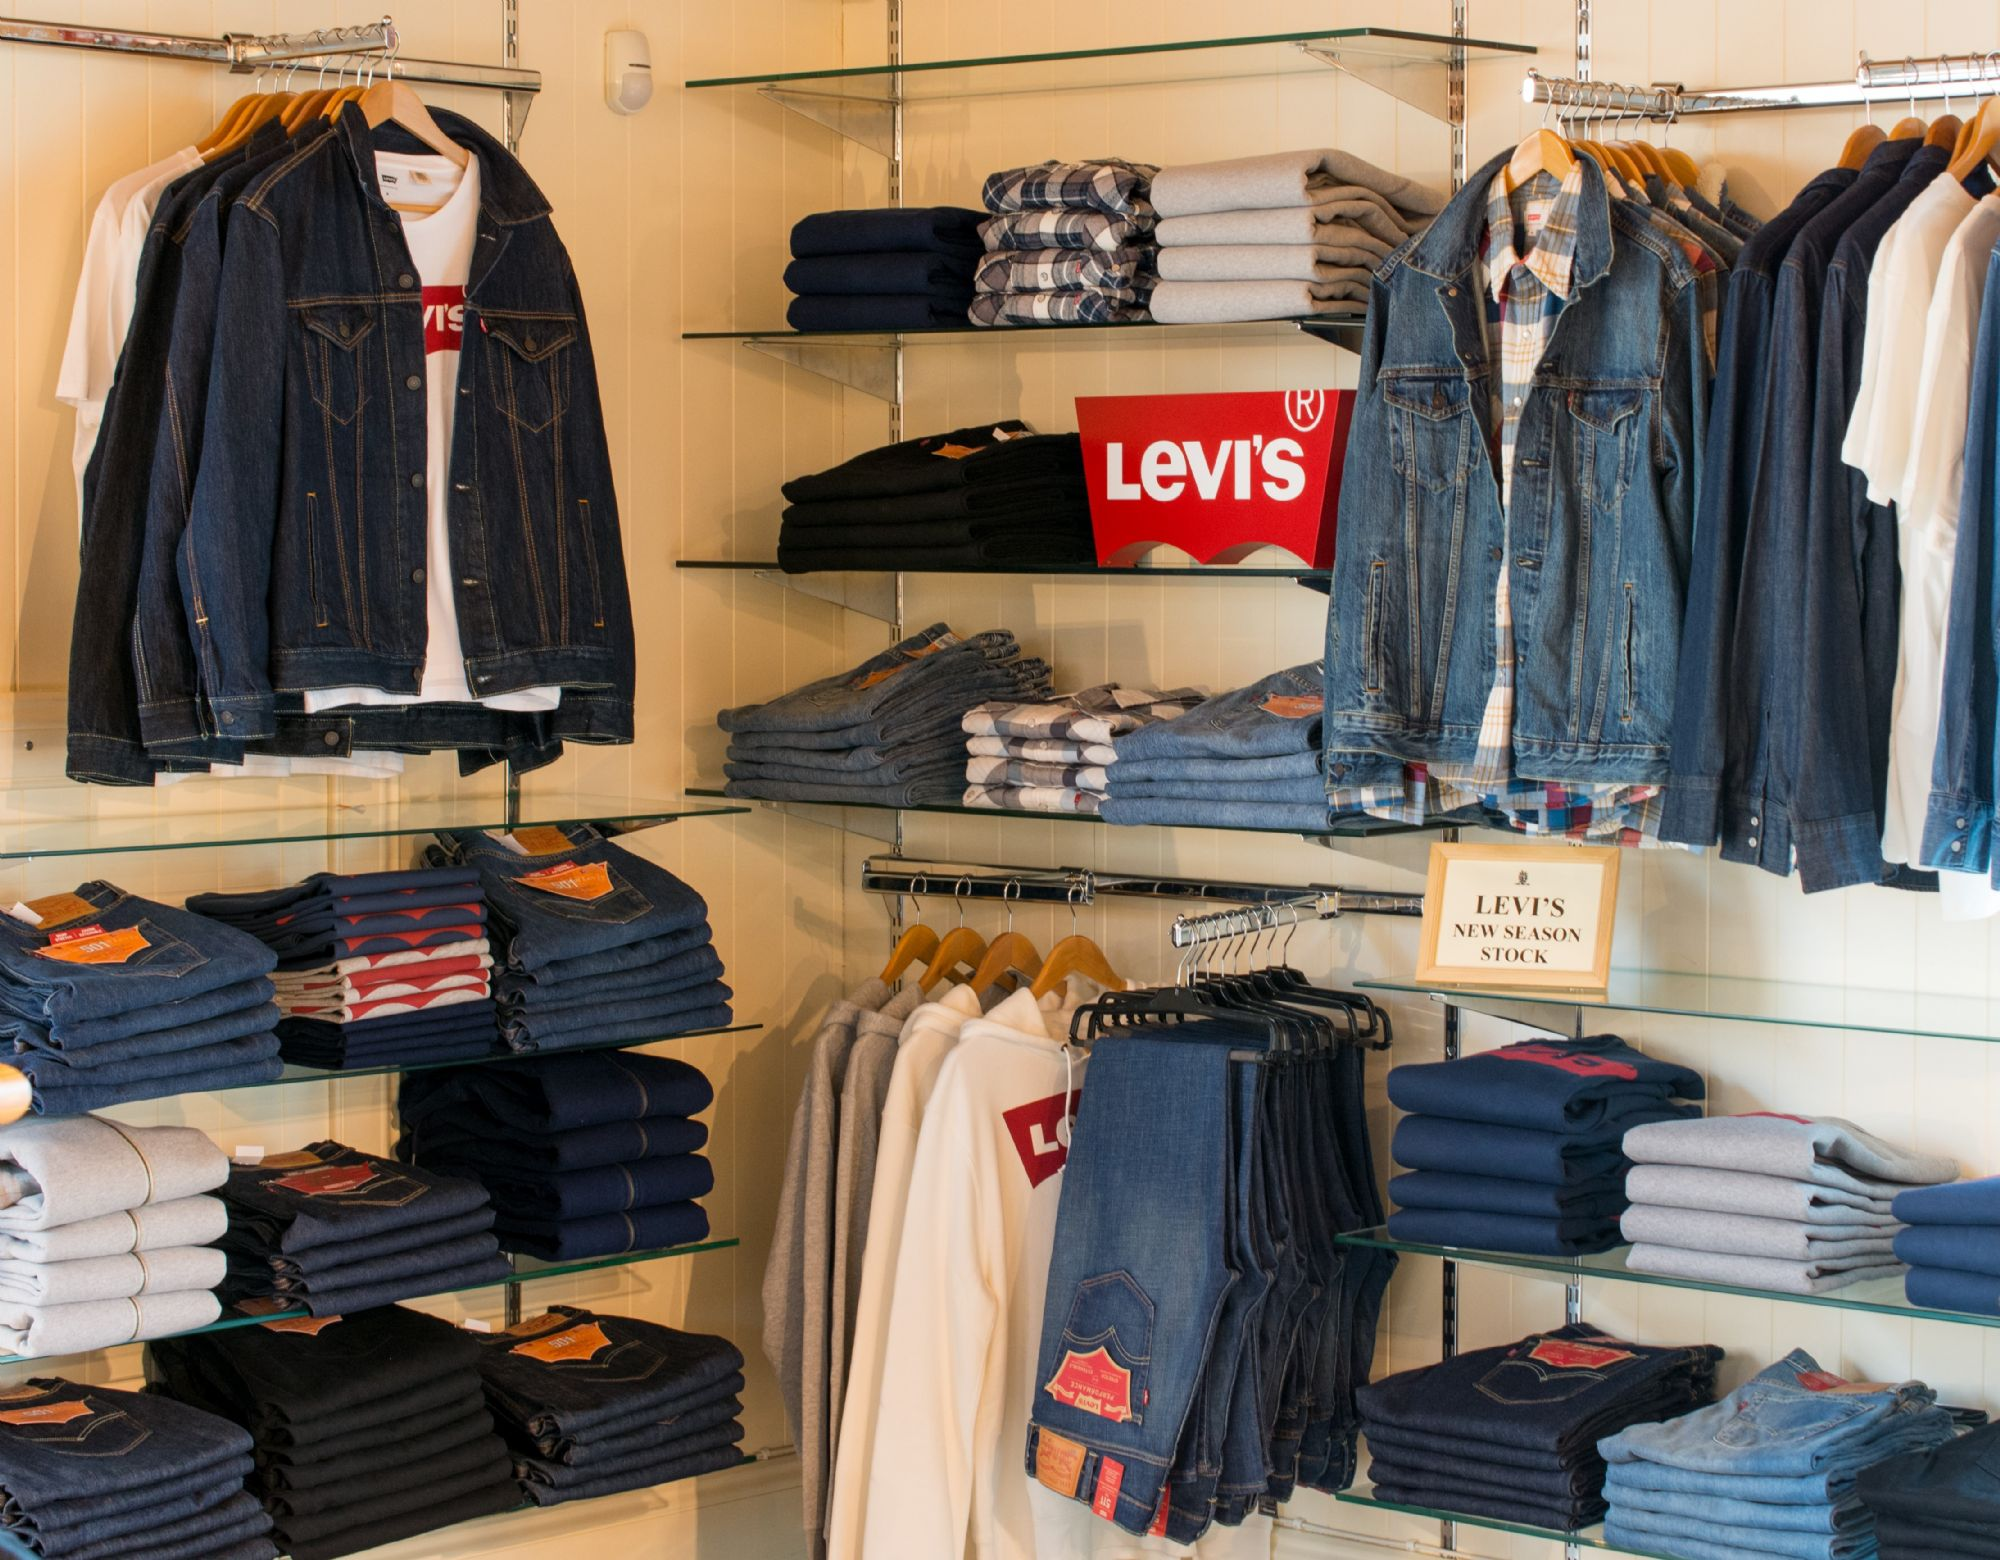 Levi department menswear hall at House of Bruar Country Clothing